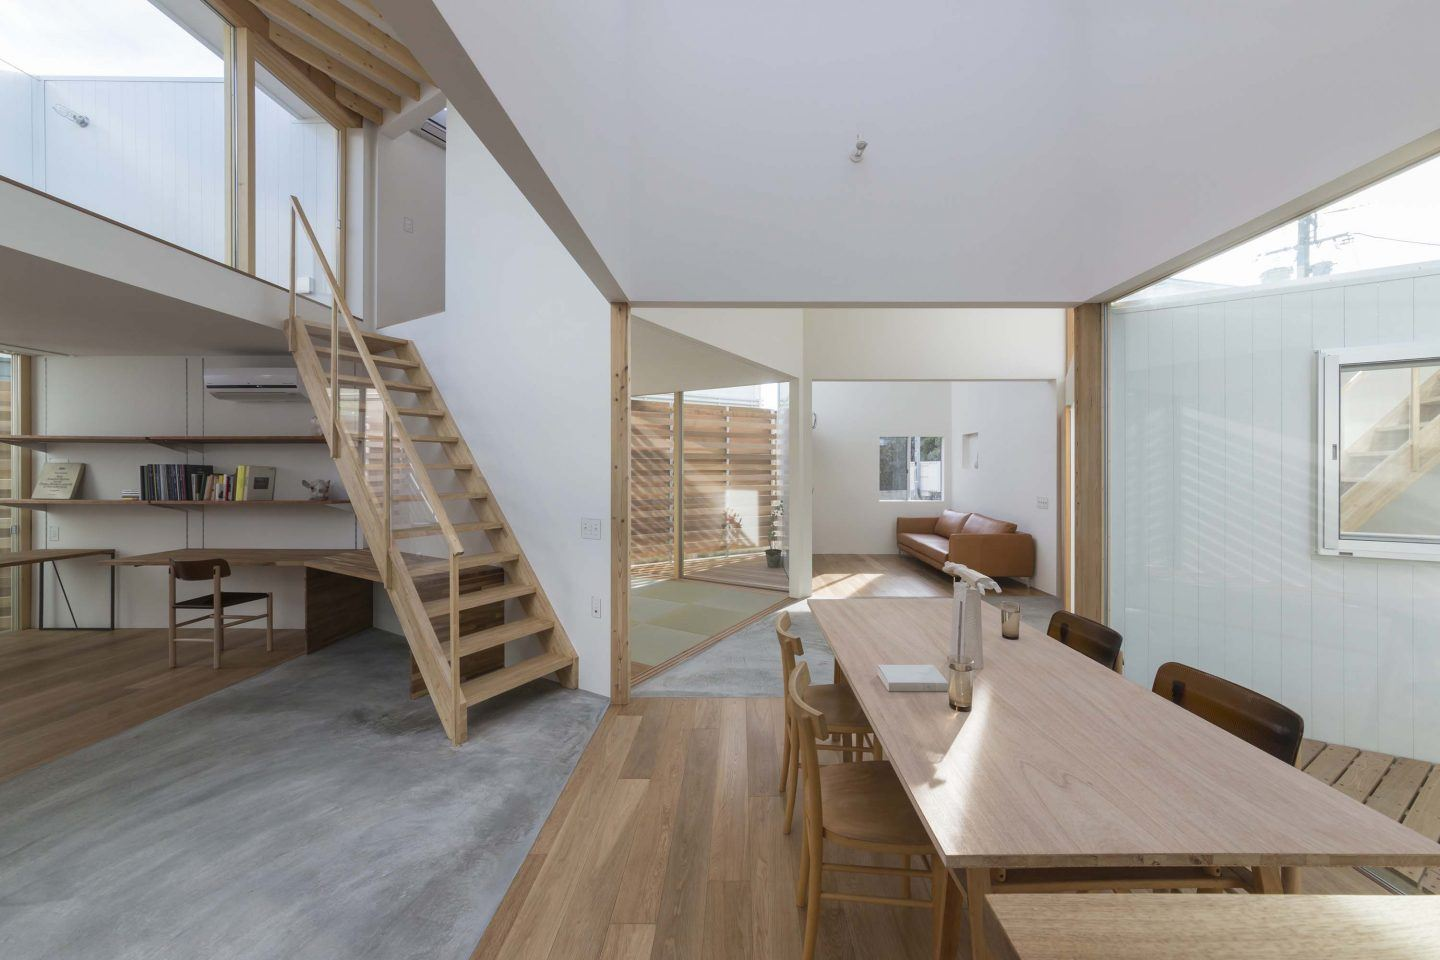 IGNANT-Architecture-Tato-Architects-House-In-Hokusetsu-8